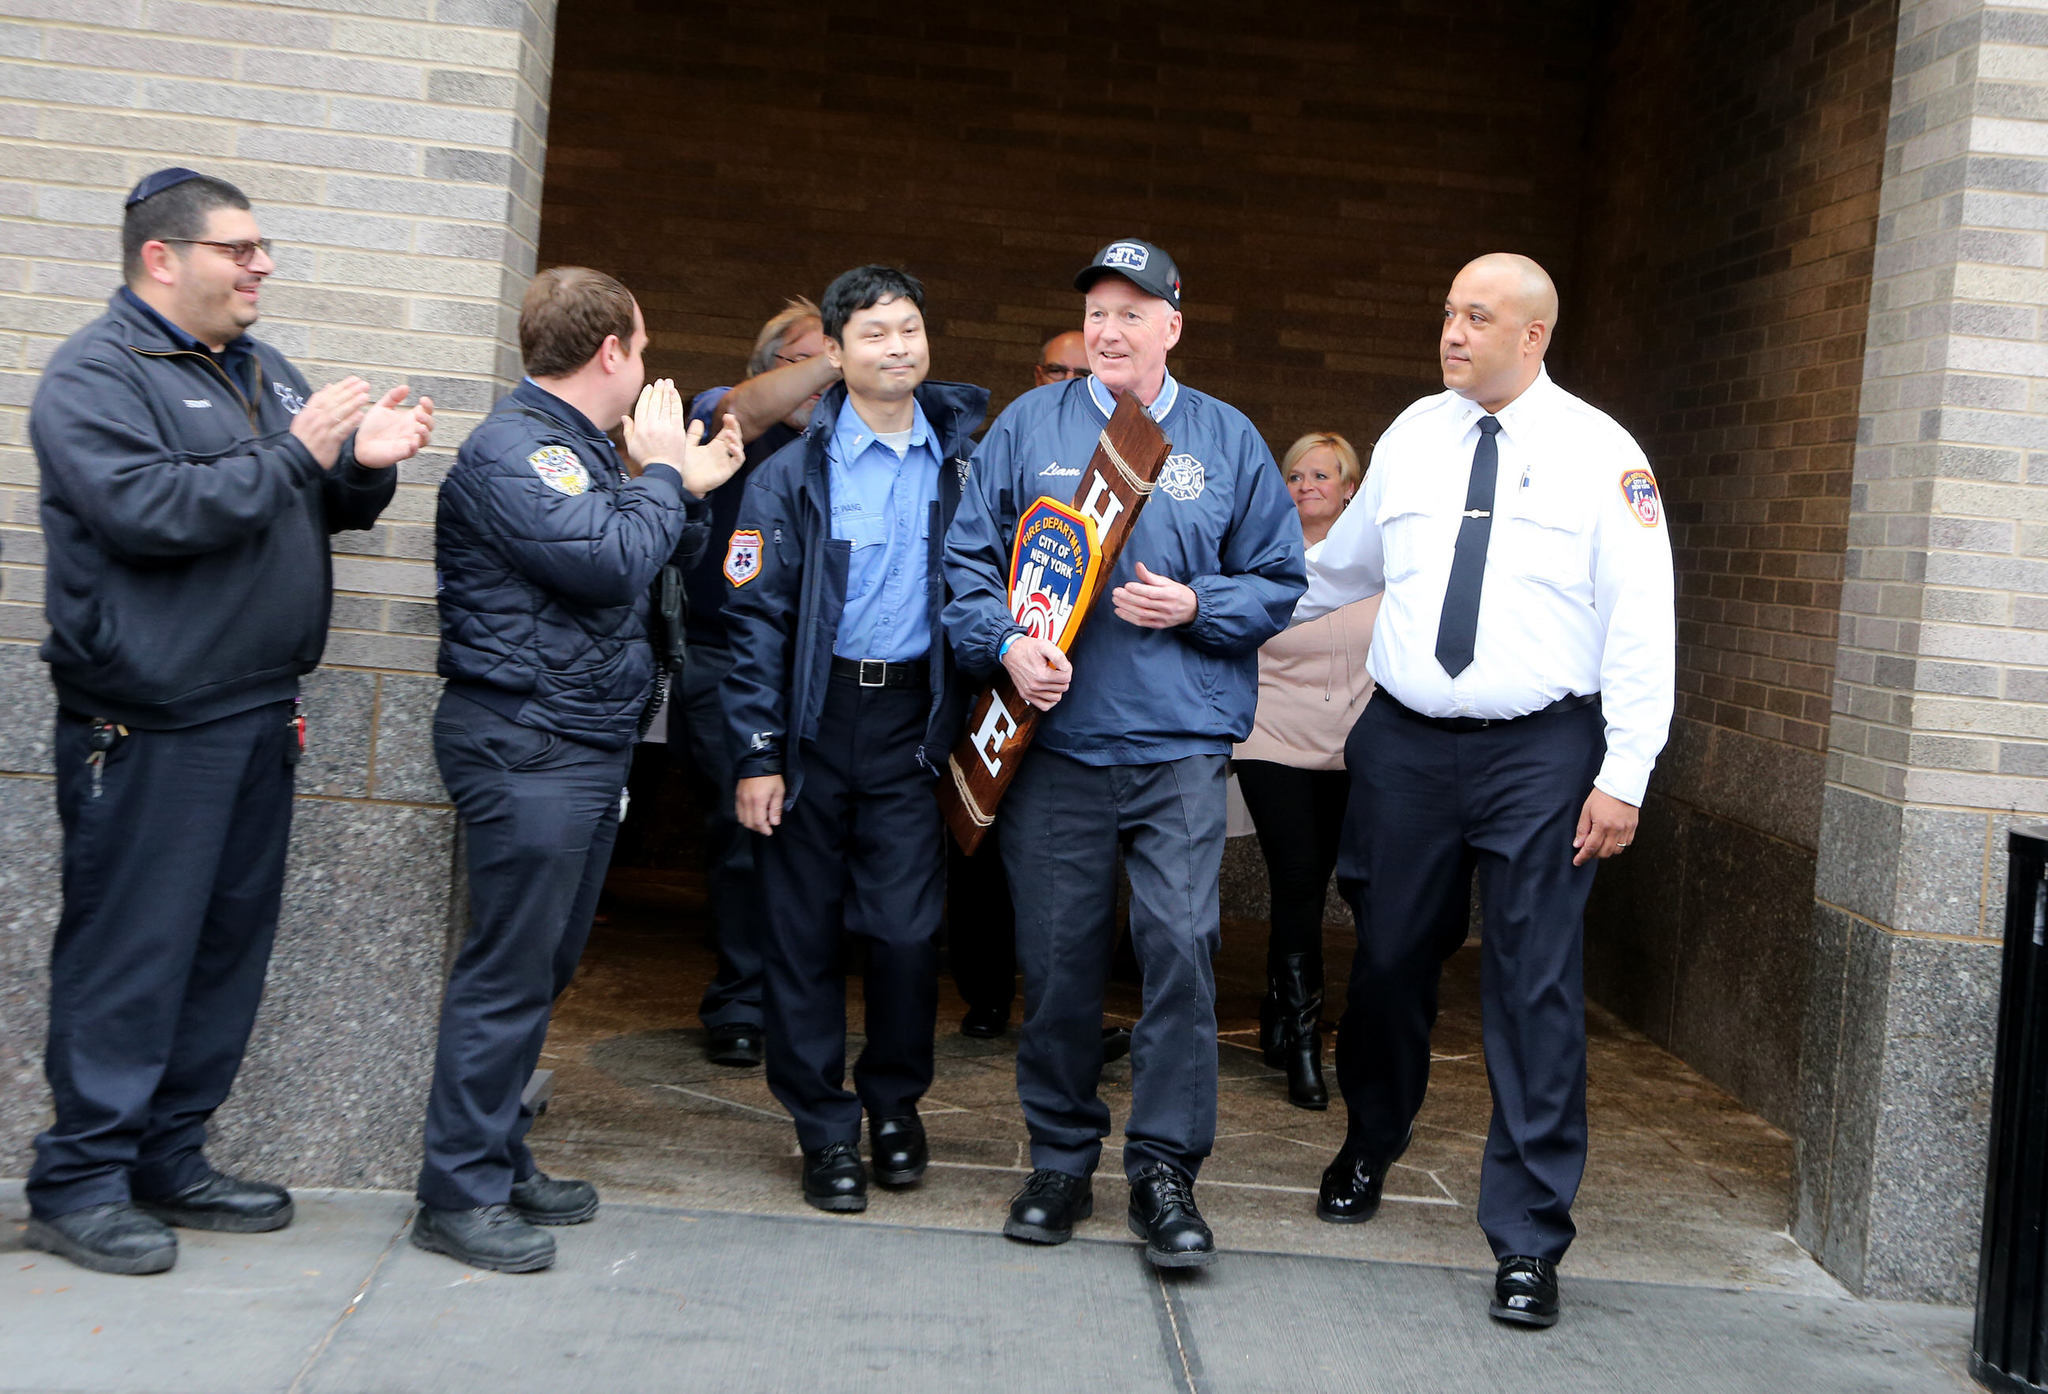 FDNY EMT who suffered stroke on the job heads home for Thanksgiving